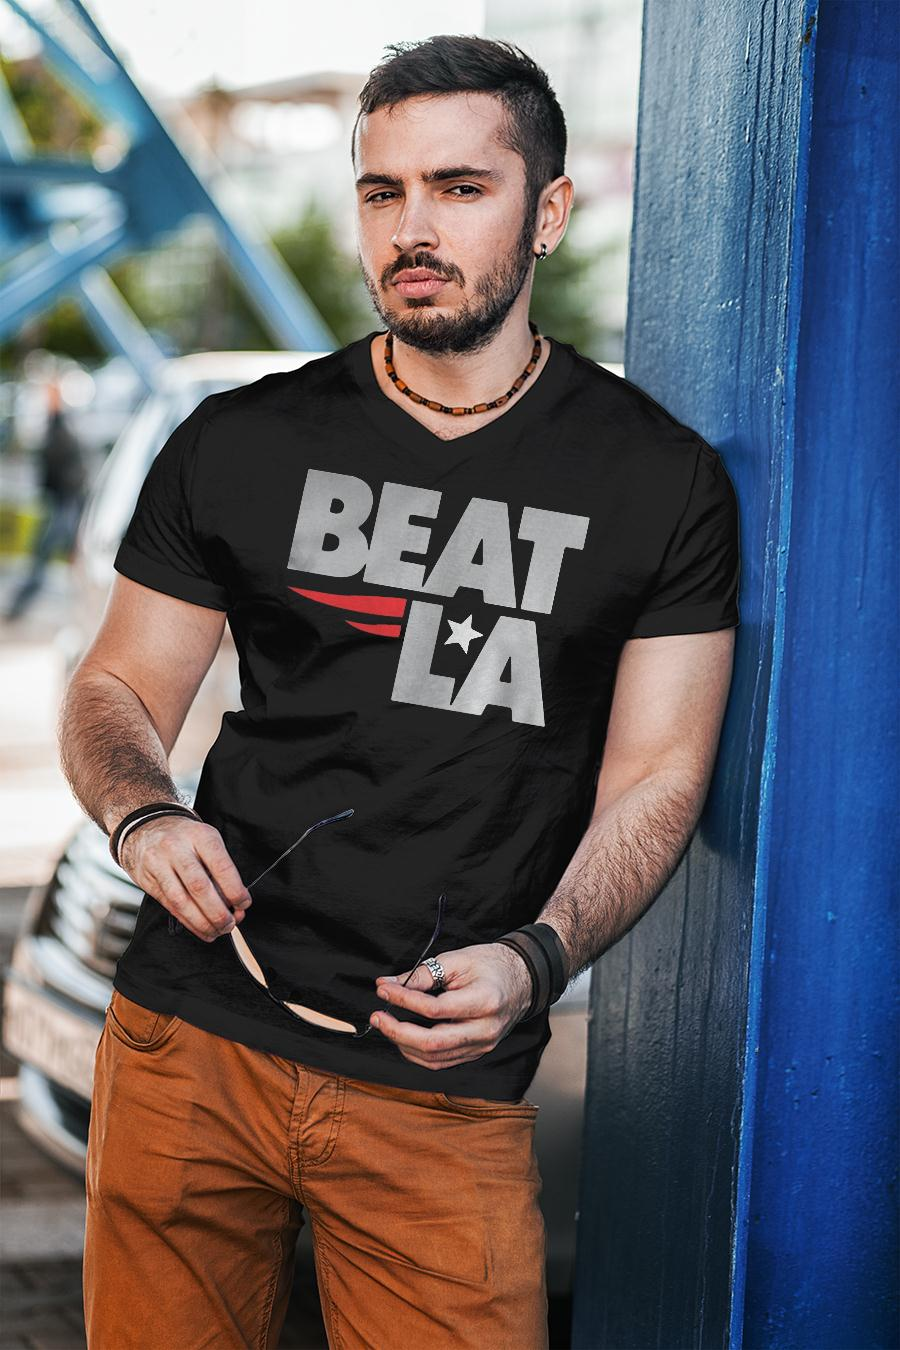 Patriots Beat LA Shirt unisex